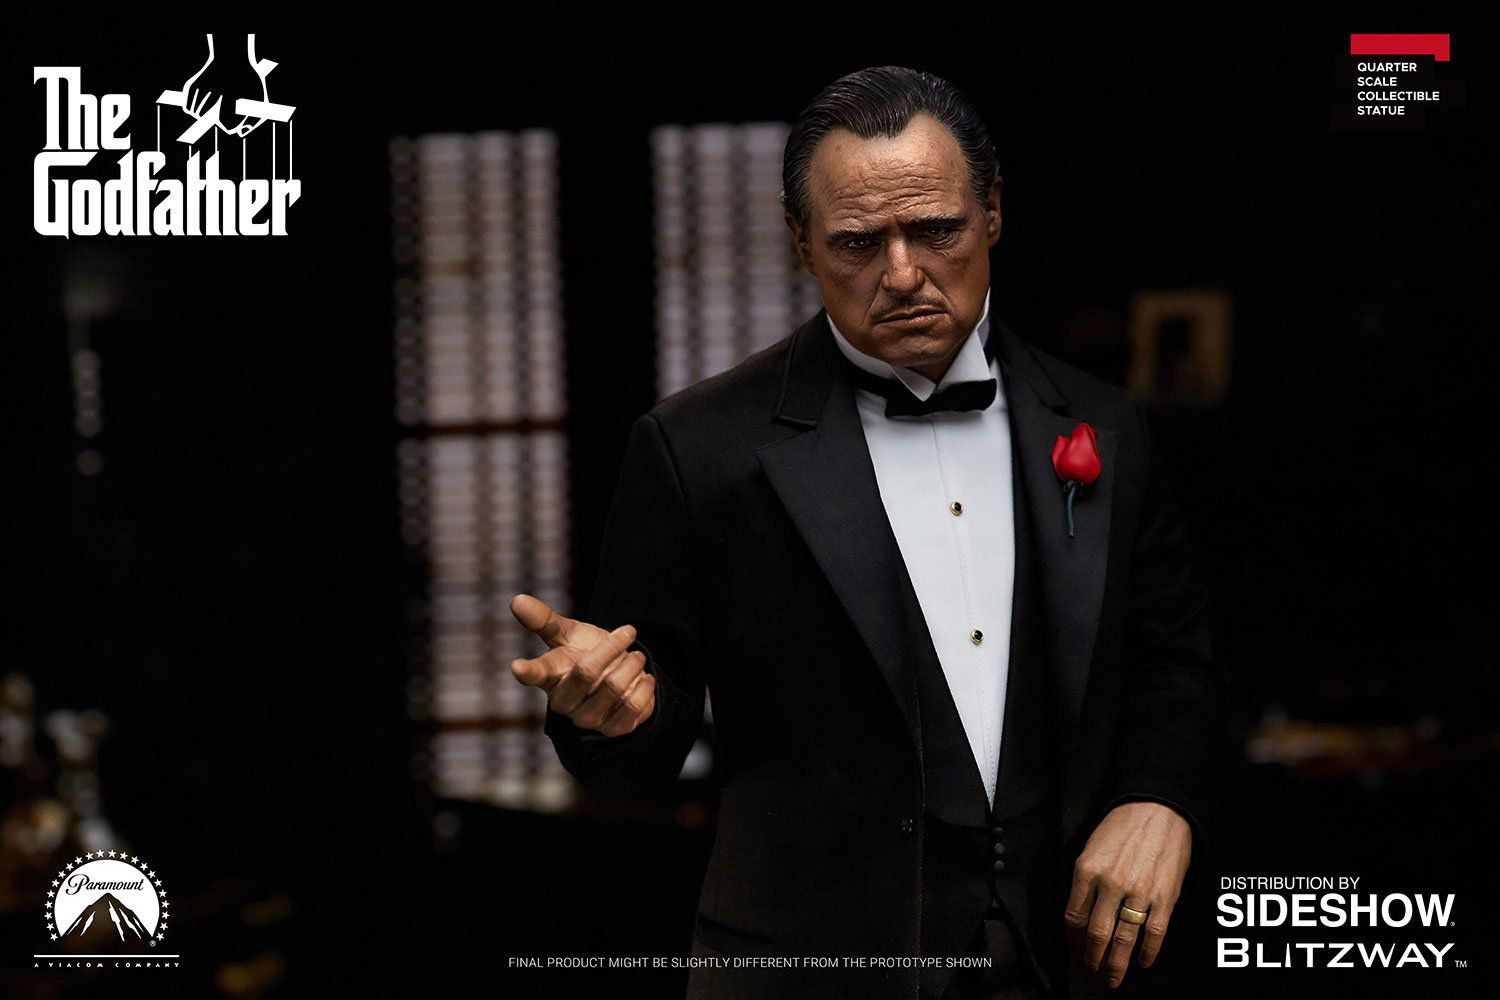 PRÉ VENDA: Estátua Vito Corleone: O Poderoso Chefão (The Godfather) Escala 1/4 - Blitzway